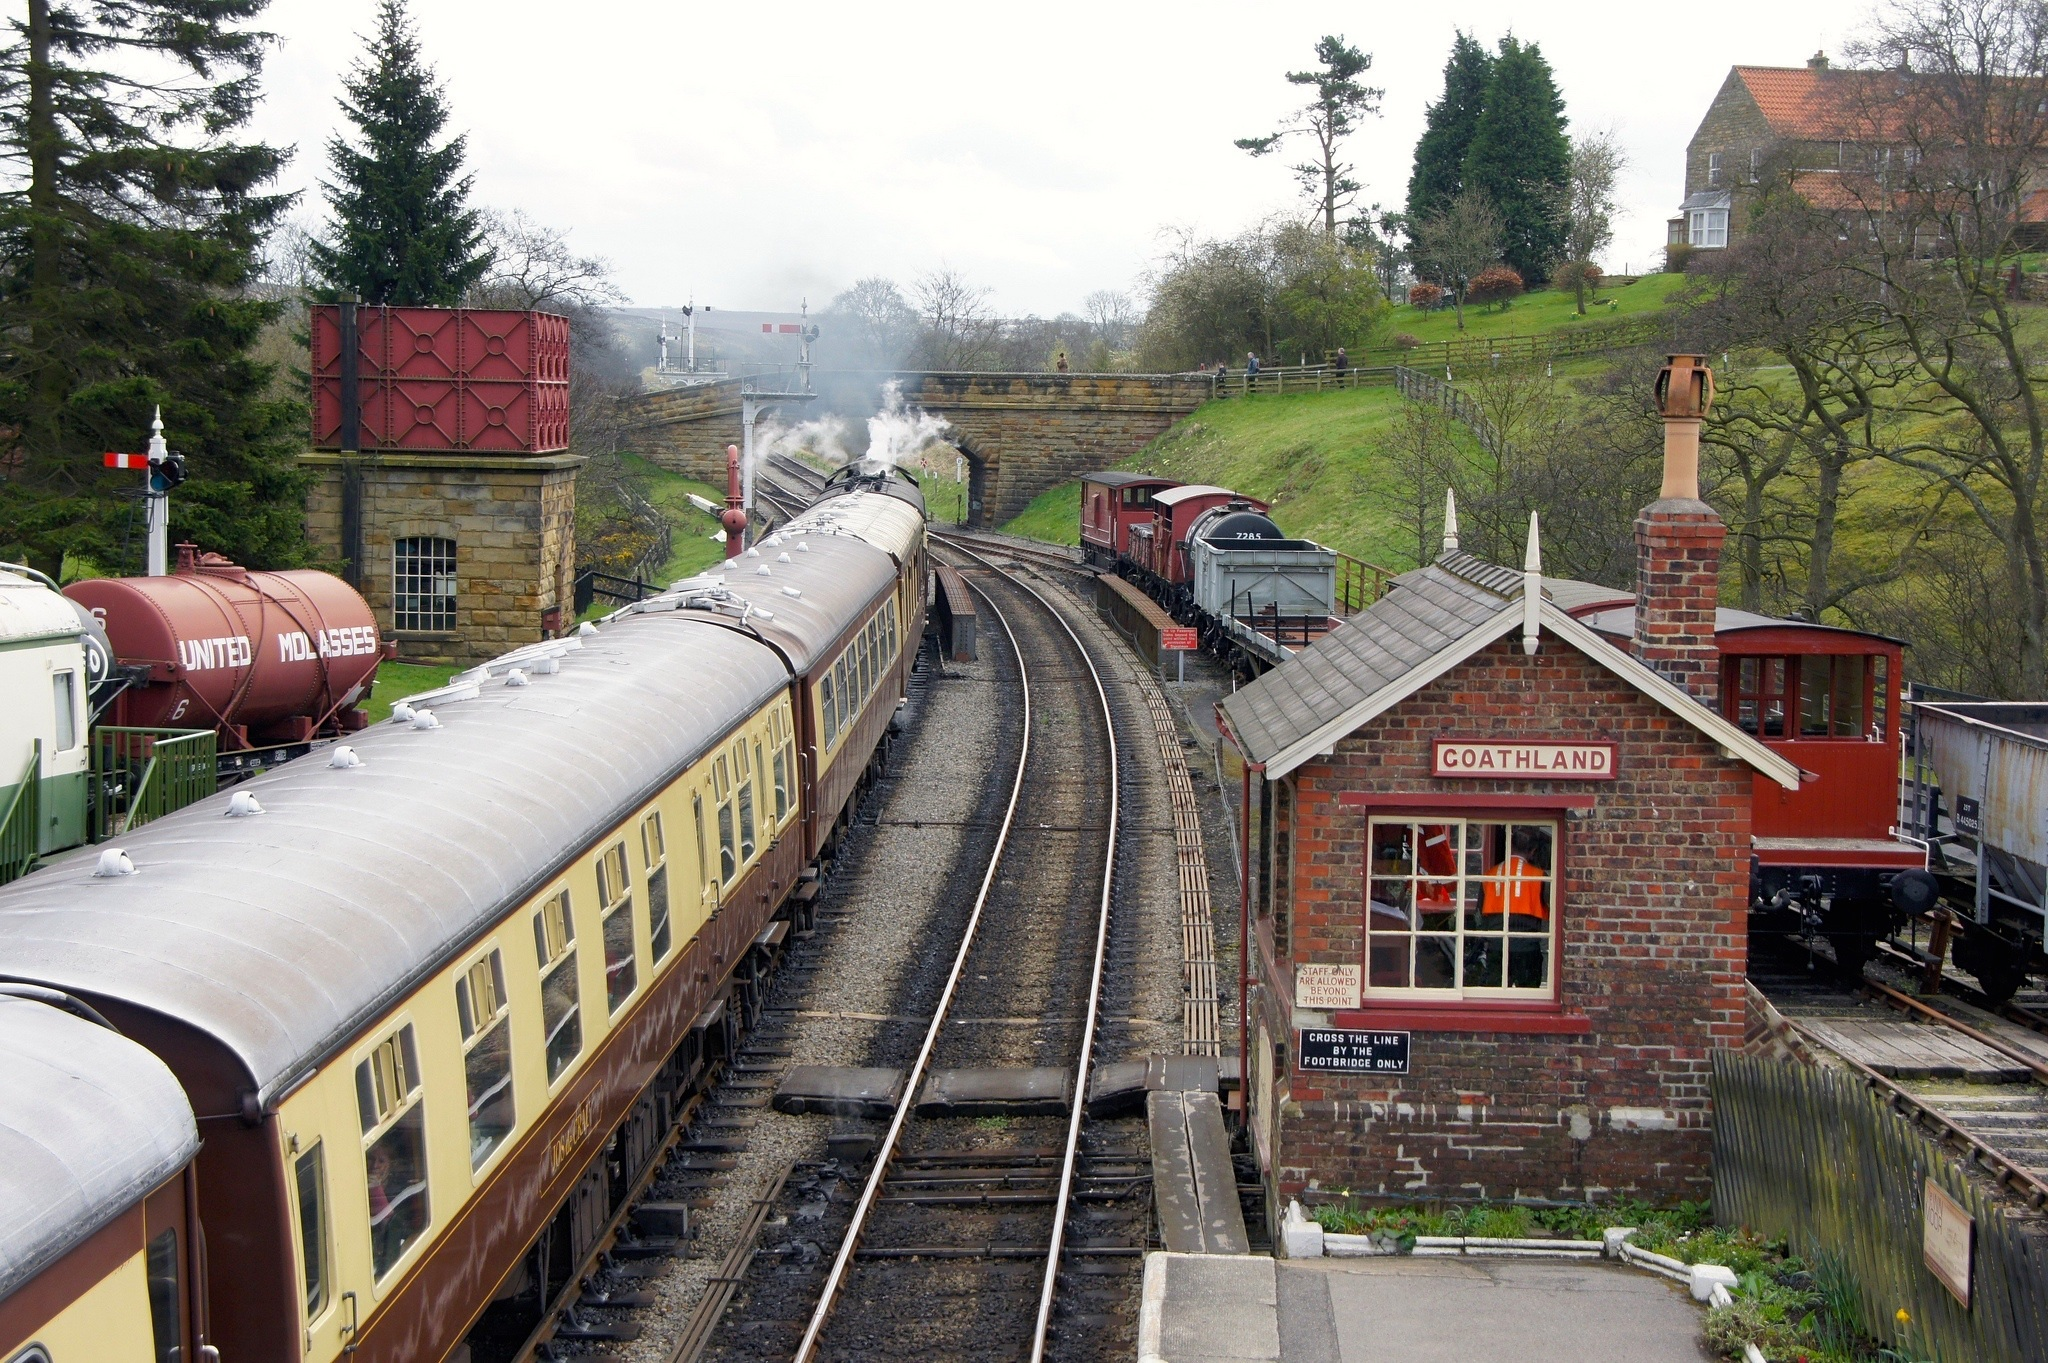 Goathland Station3